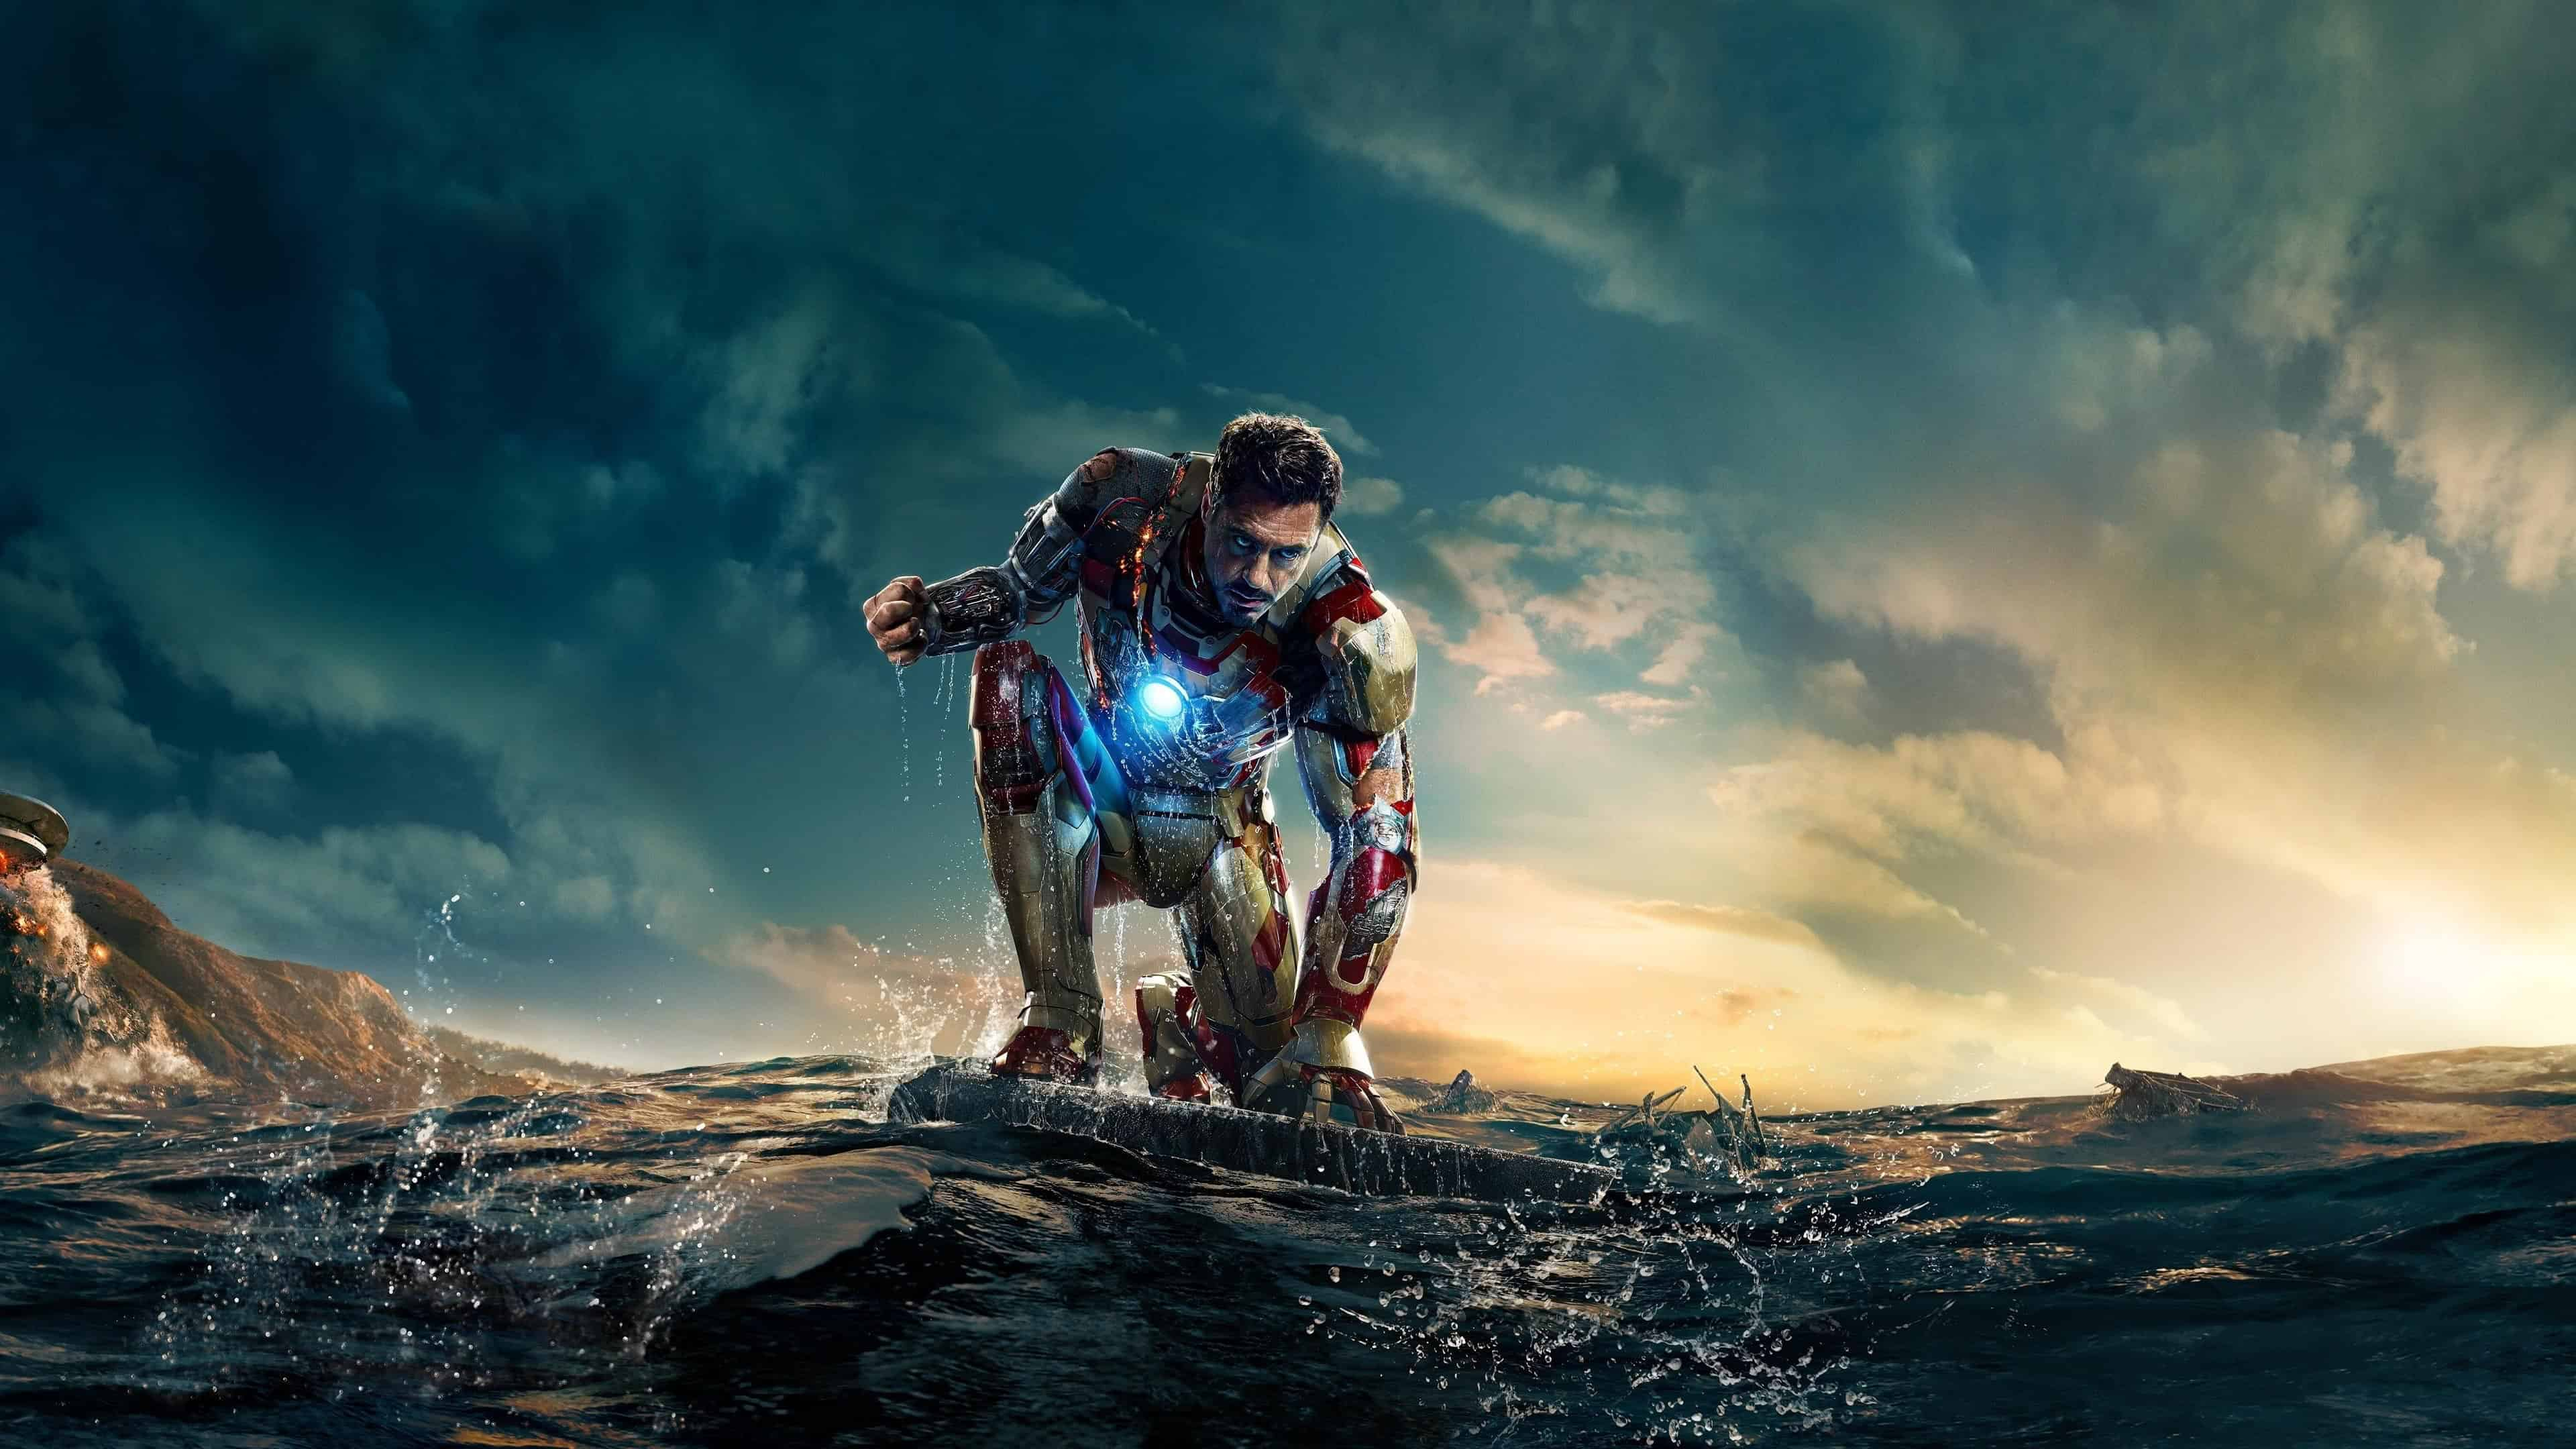 Iron Man 3 Tony Stark Uhd 4k Wallpaper Pixelz